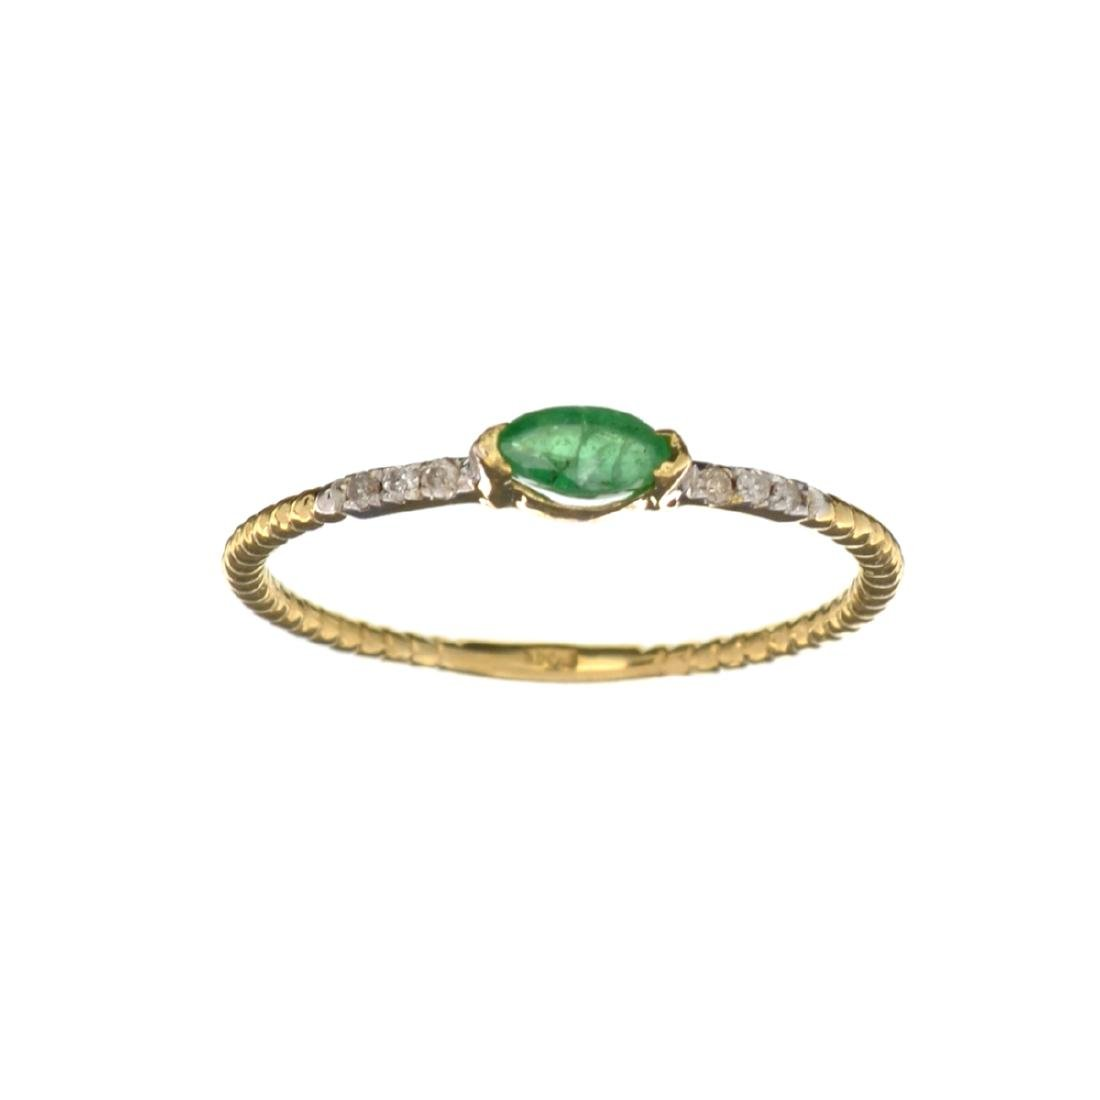 APP: 0.4k Fine Jewelry 14 KT Gold, 0.12CT Green Emerald